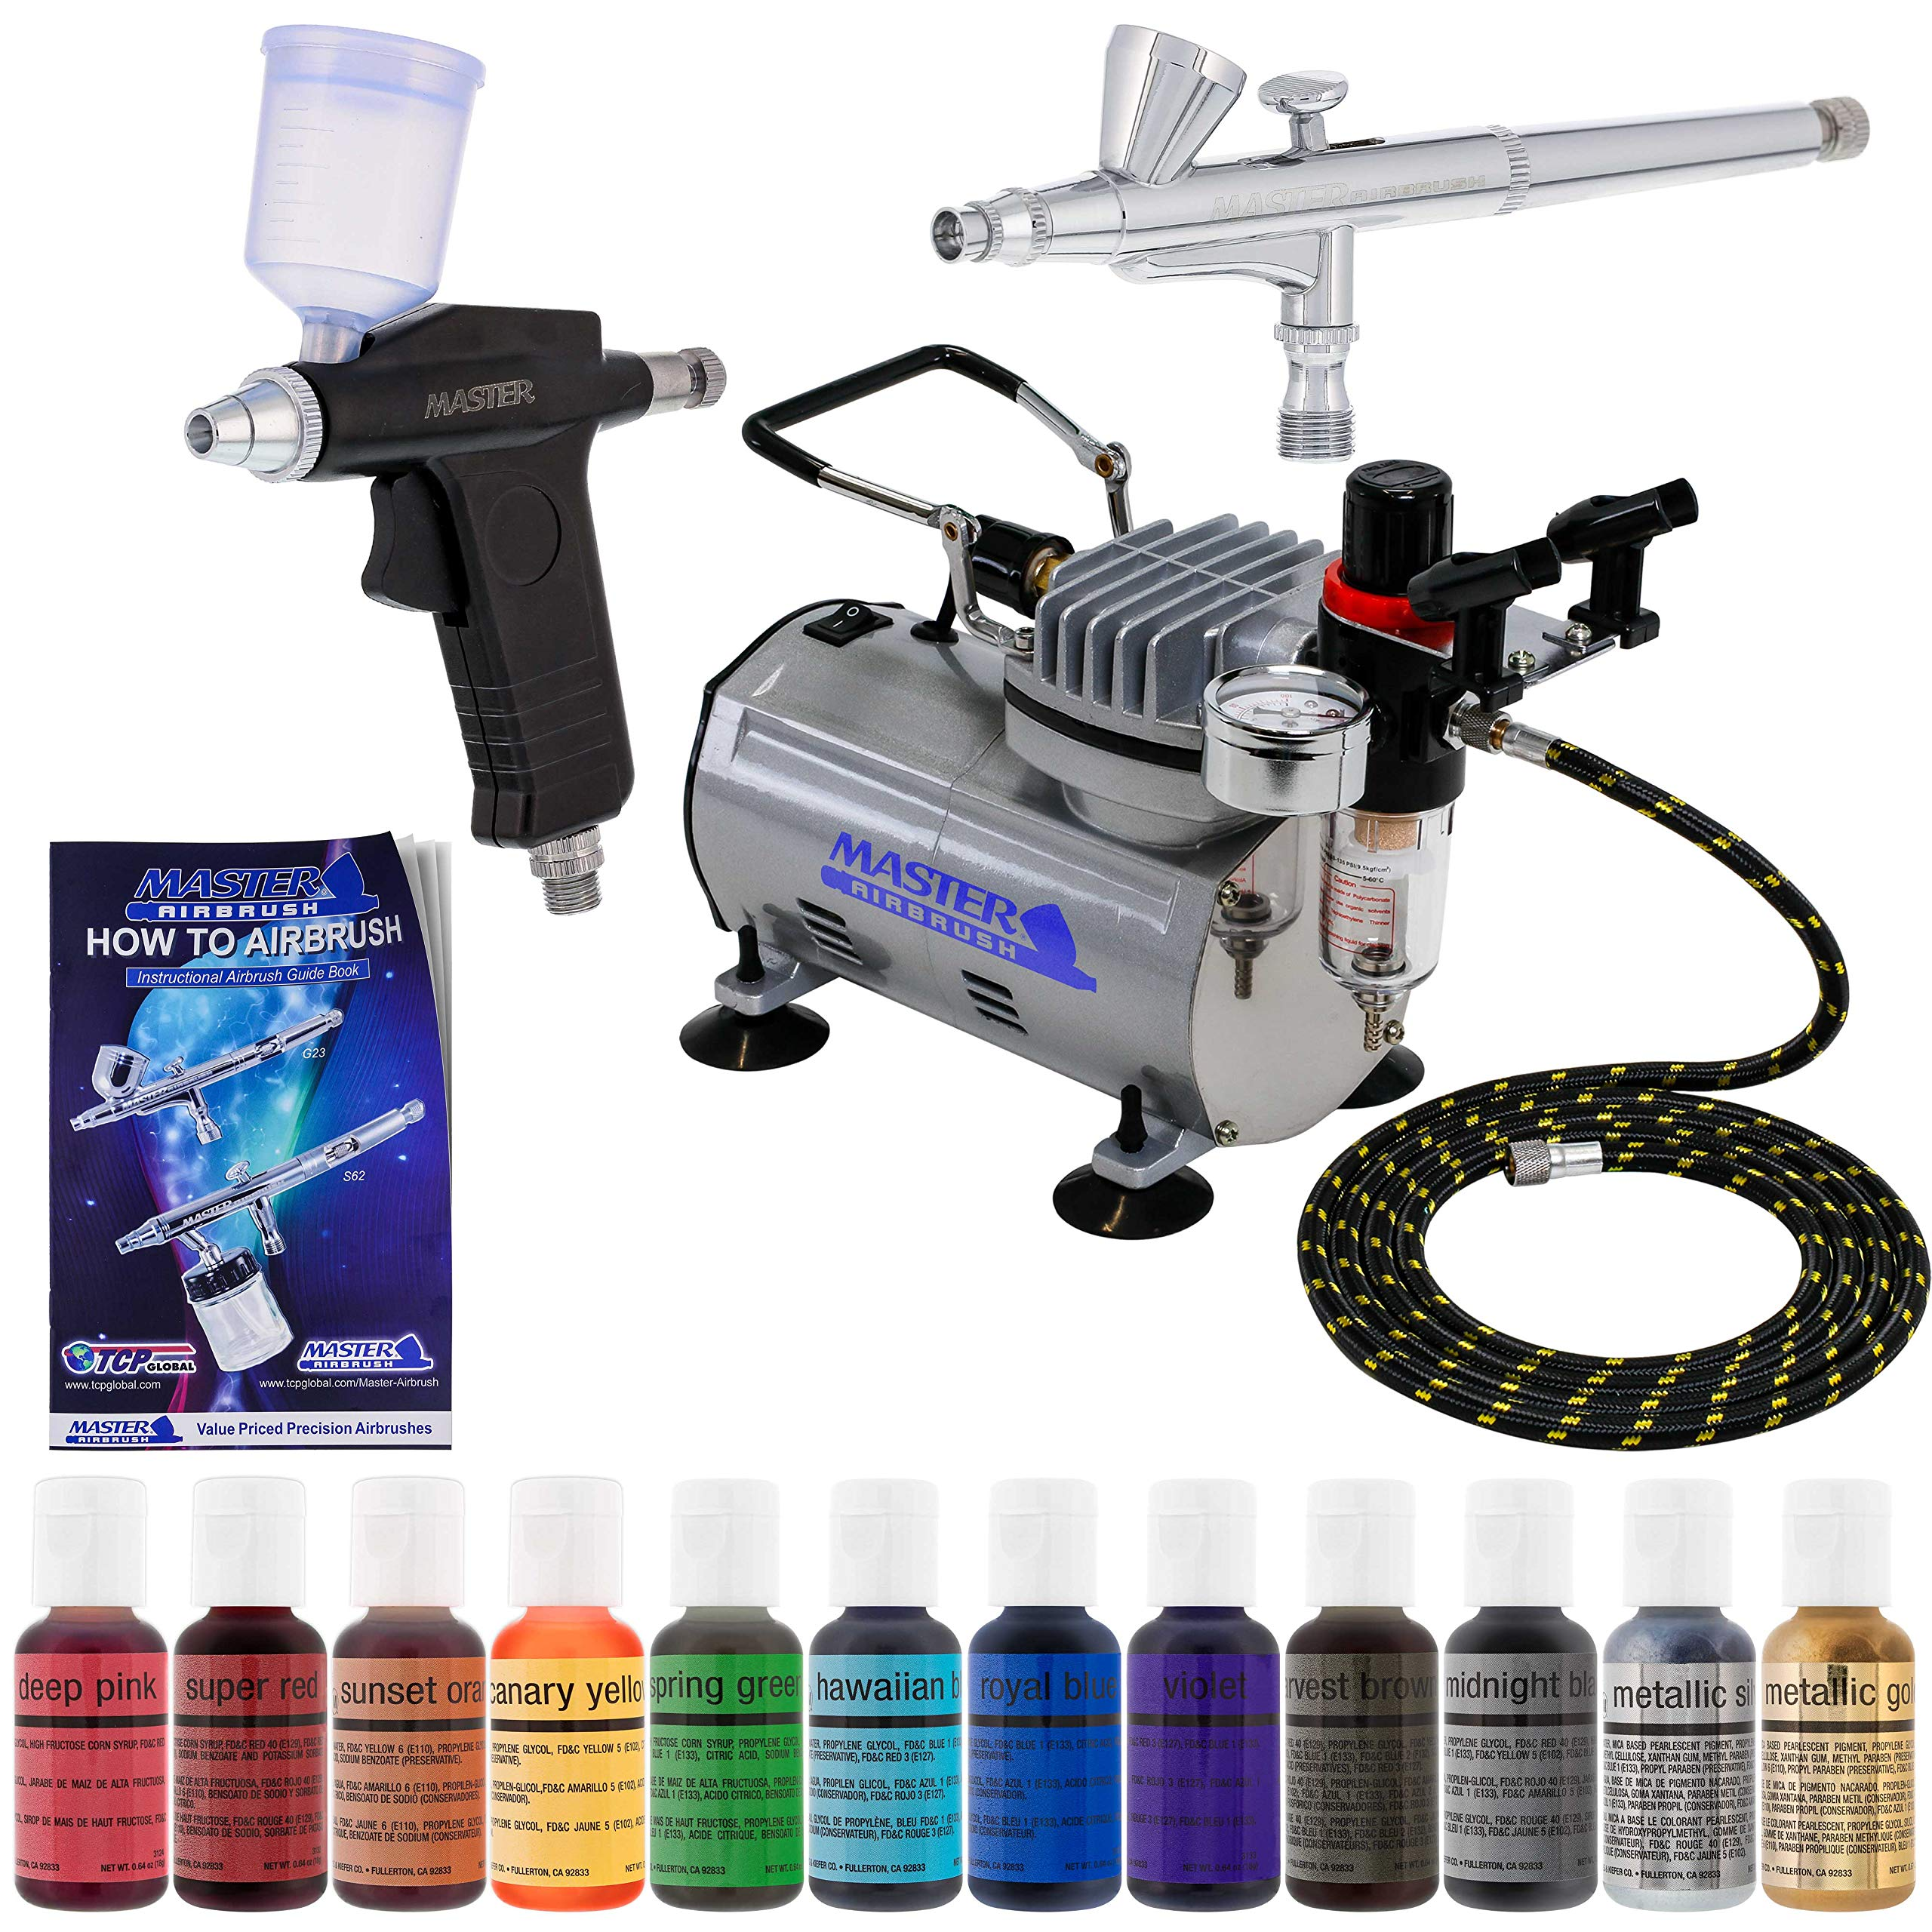 Super Deluxe 2 Airbrush Master Airbrush Cake Decorating Airbrushing System Kit with Set of 12 Chefmaster Food Colors, Gravity Feed Airbrushes, Air Compressor - Decorate Cakes Cupcakes Cookies Desserts by Master Airbrush